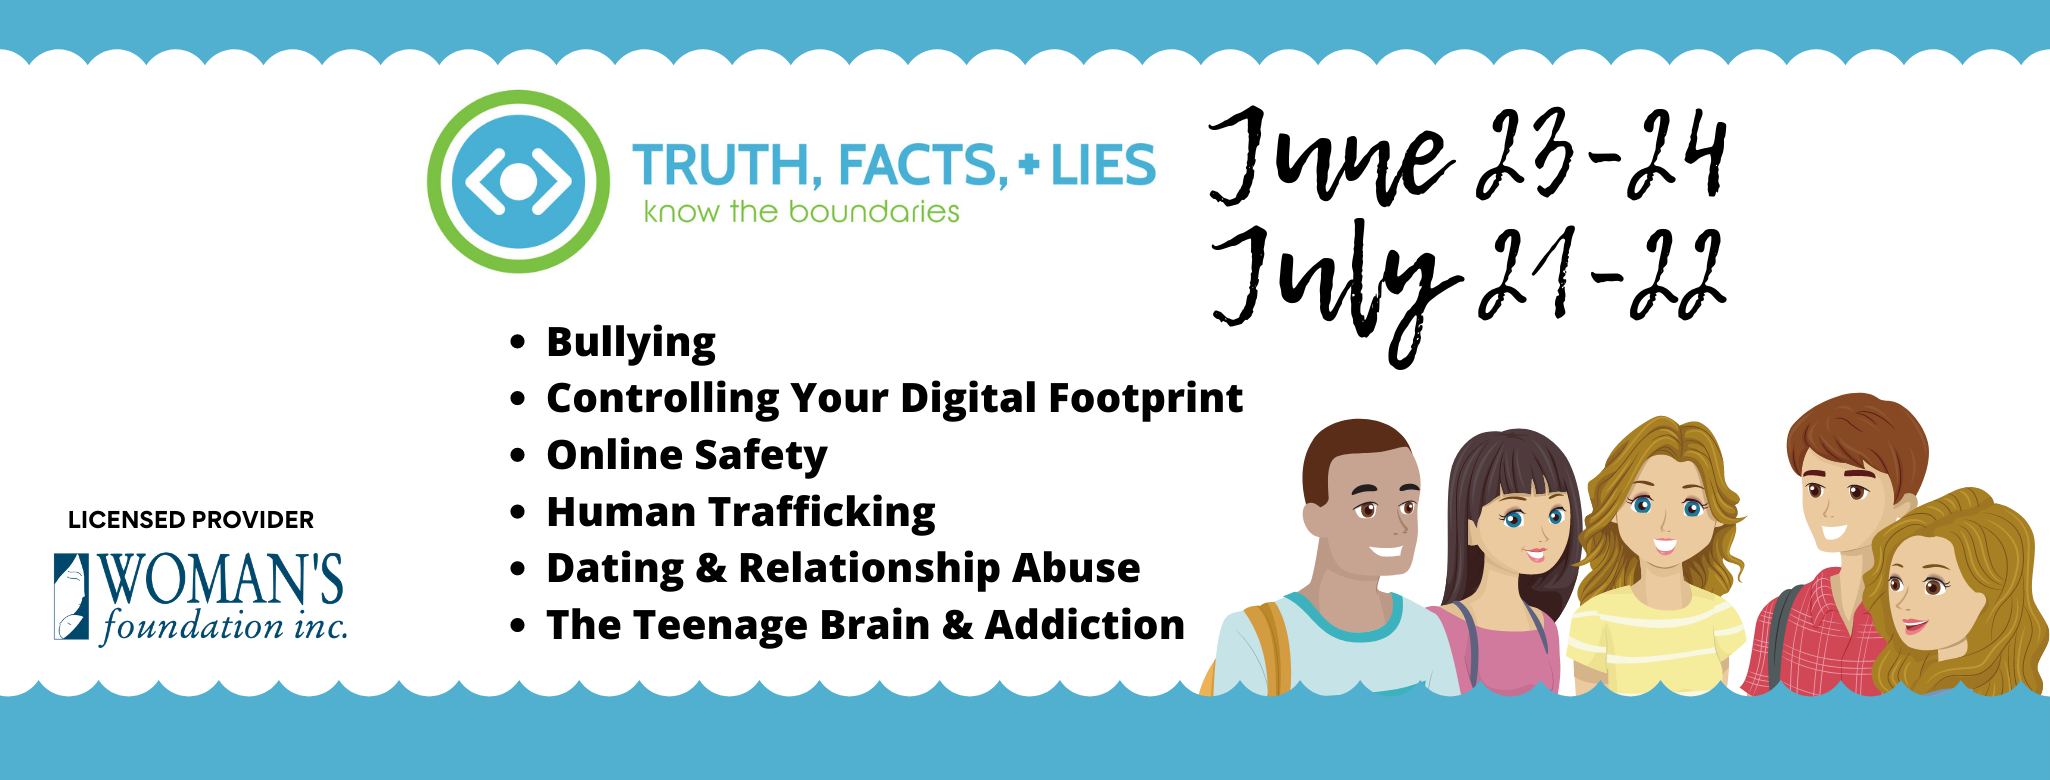 Truth, Facts + Lies Program - Teaching Teens to Know Their Boundaries On and Off the Screen